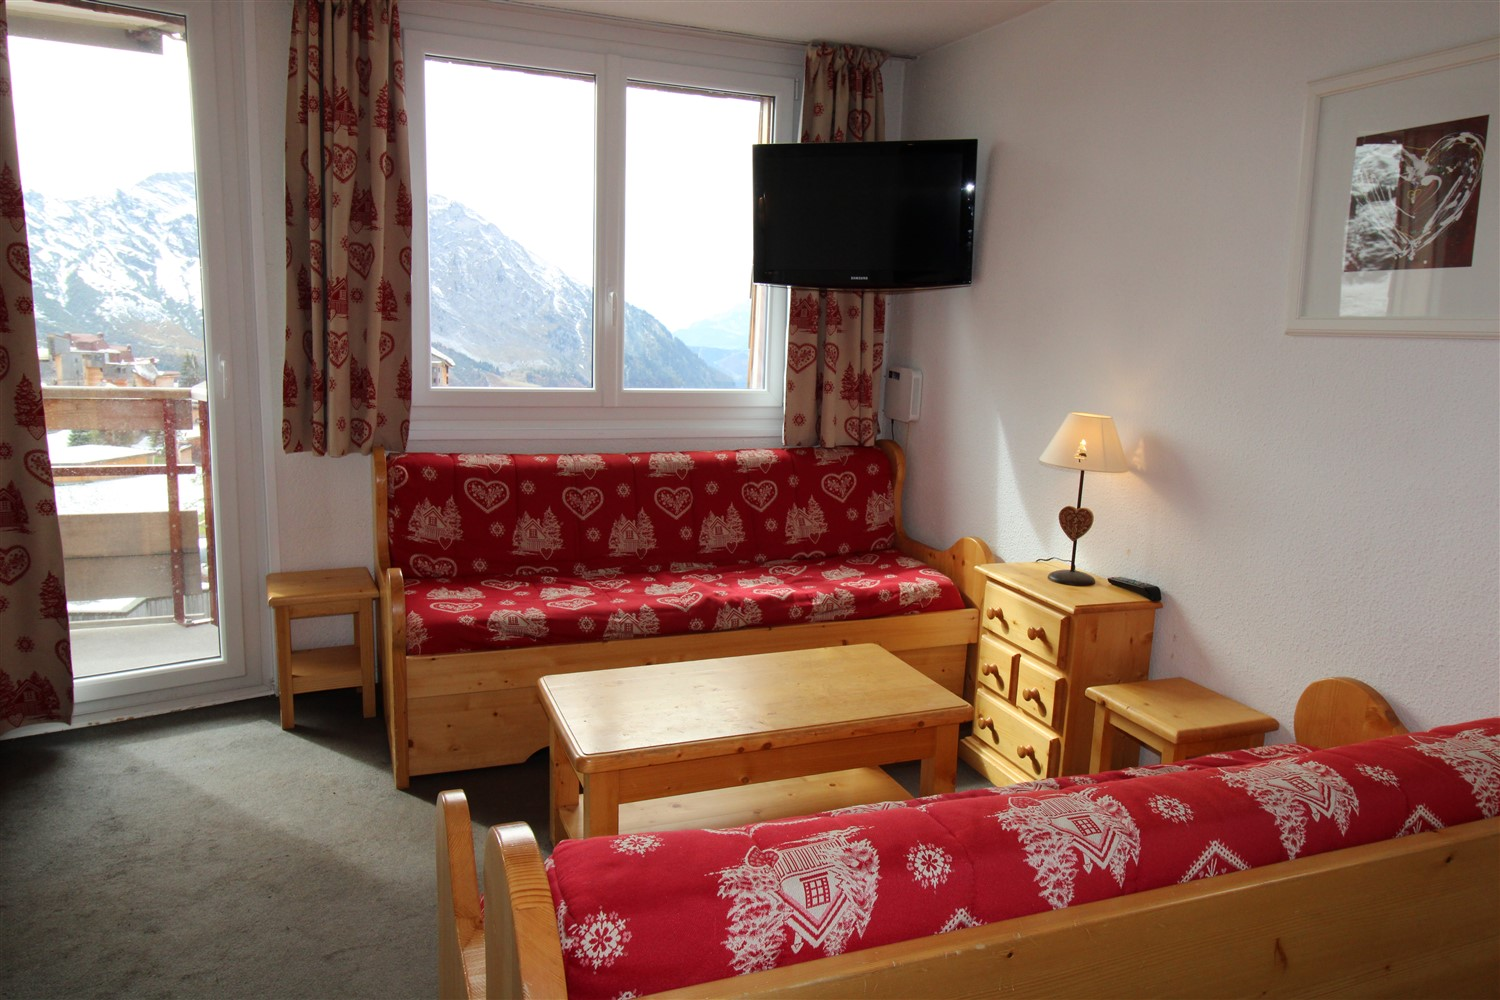 Location Bd3 Alpages II Avoriaz